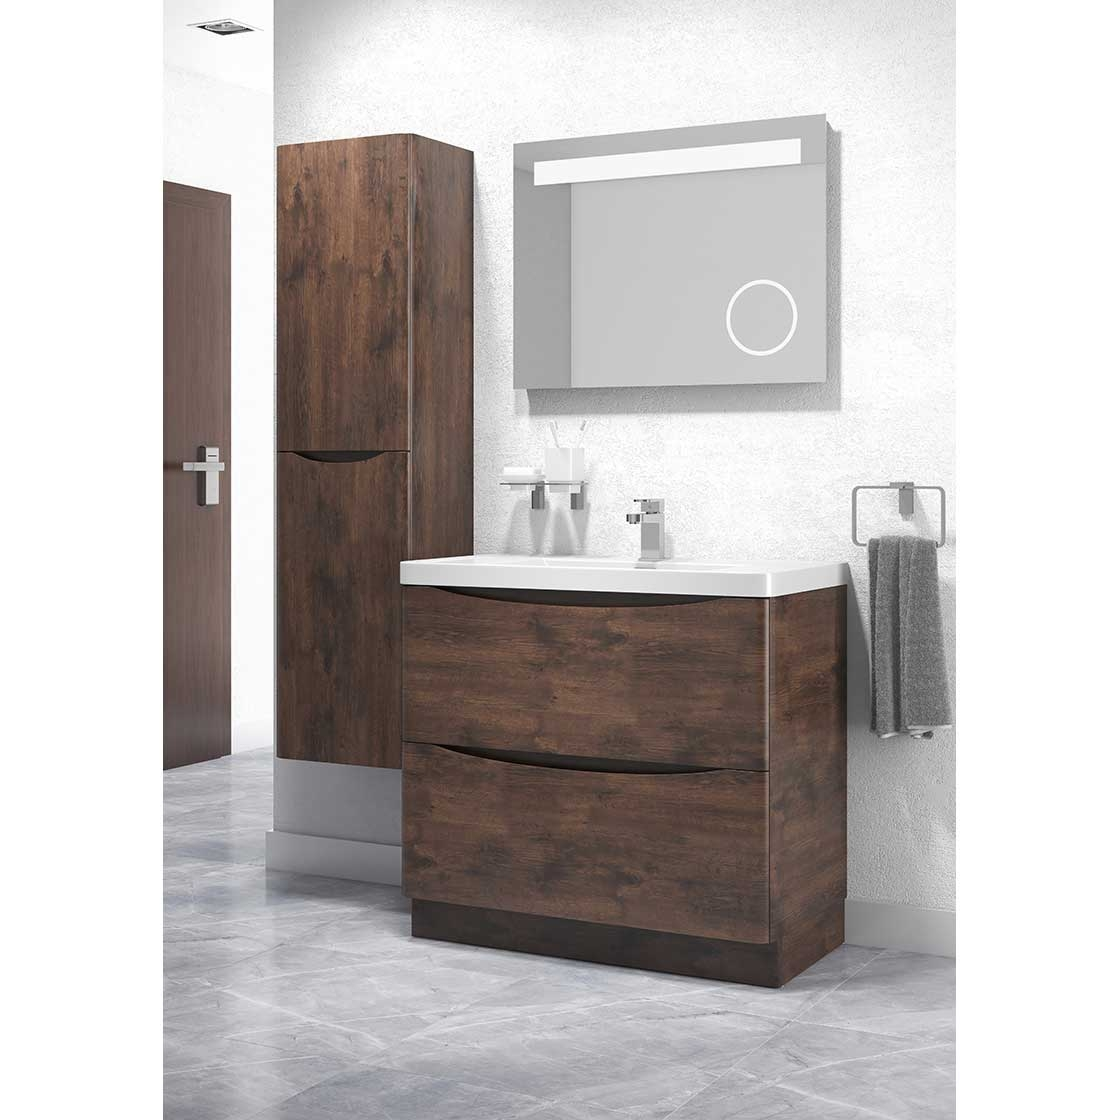 Cali Bali Wall Mounted Tall Storage Cabinet - 400mm Wide - Chestnut